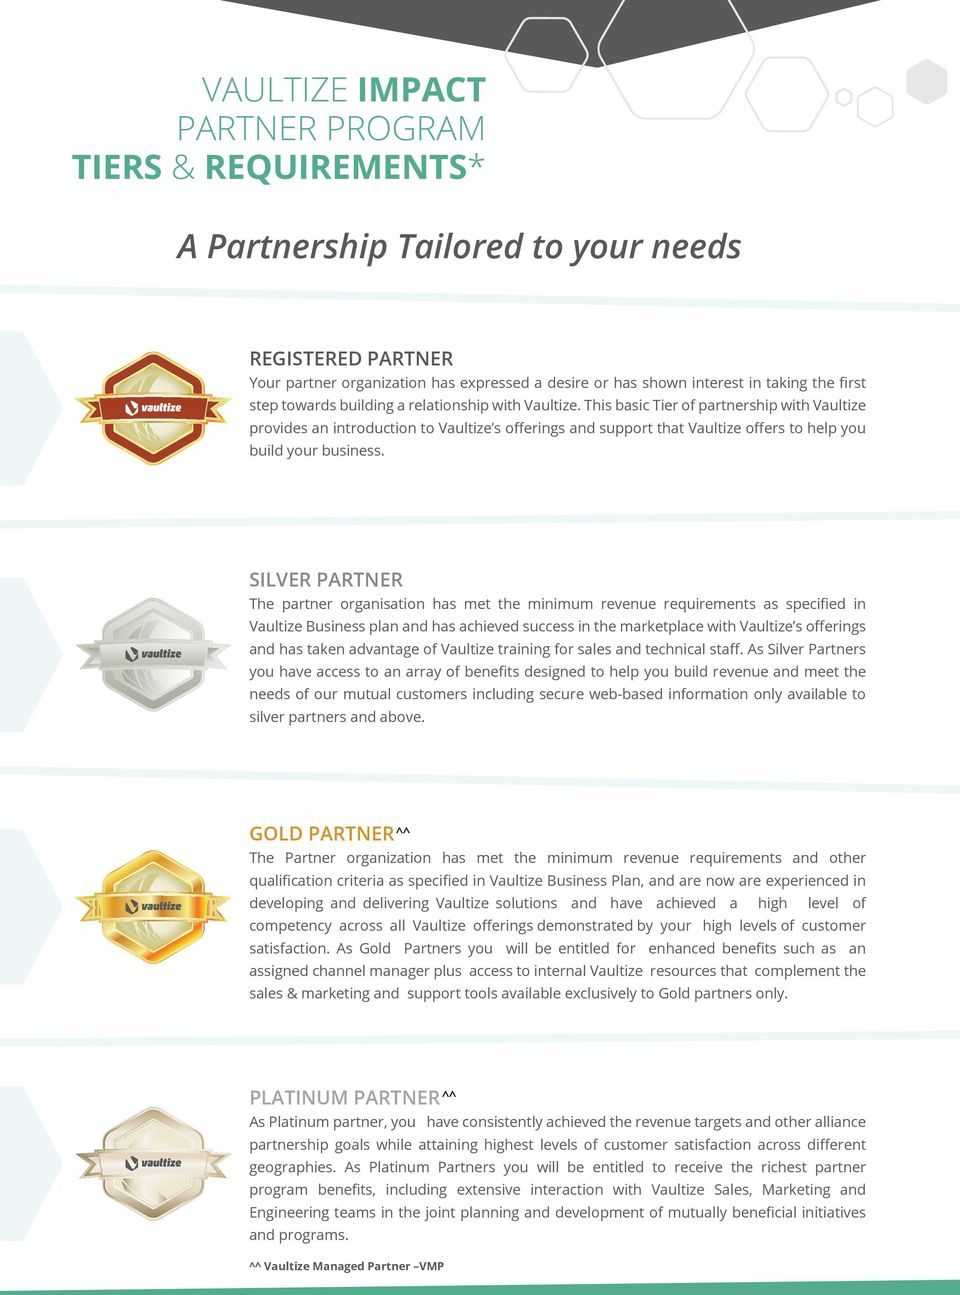 This basic Tier of partnership with Vaultize provides an introduction to Vaultize s offerings and support that Vaultize offers to help you build your business.